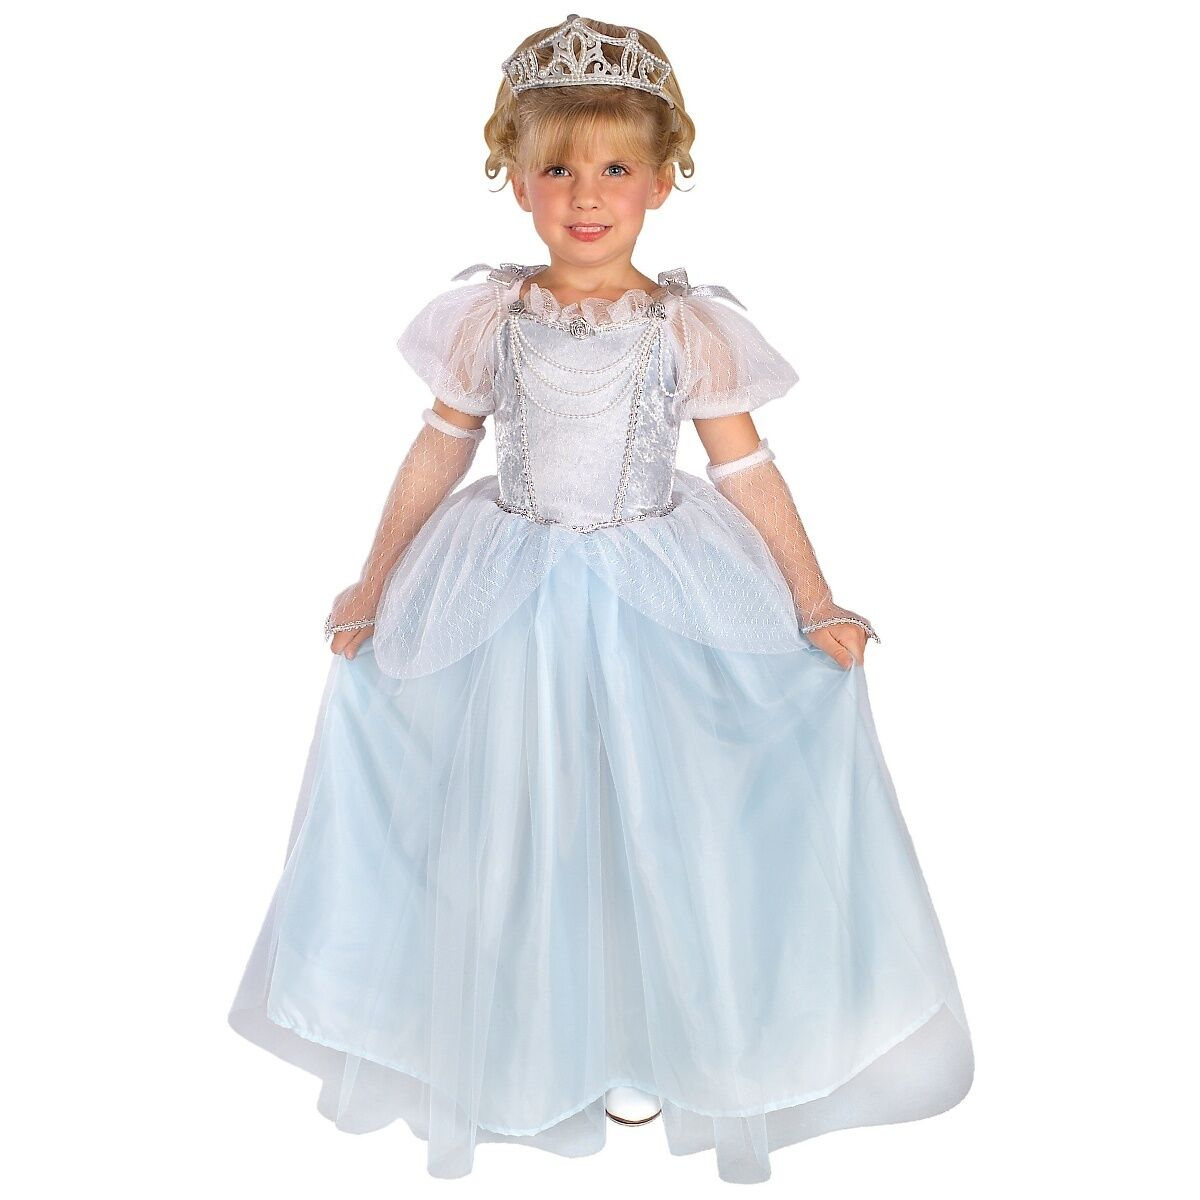 Find great deals on eBay for girls princess dress up costumes. Shop with confidence.